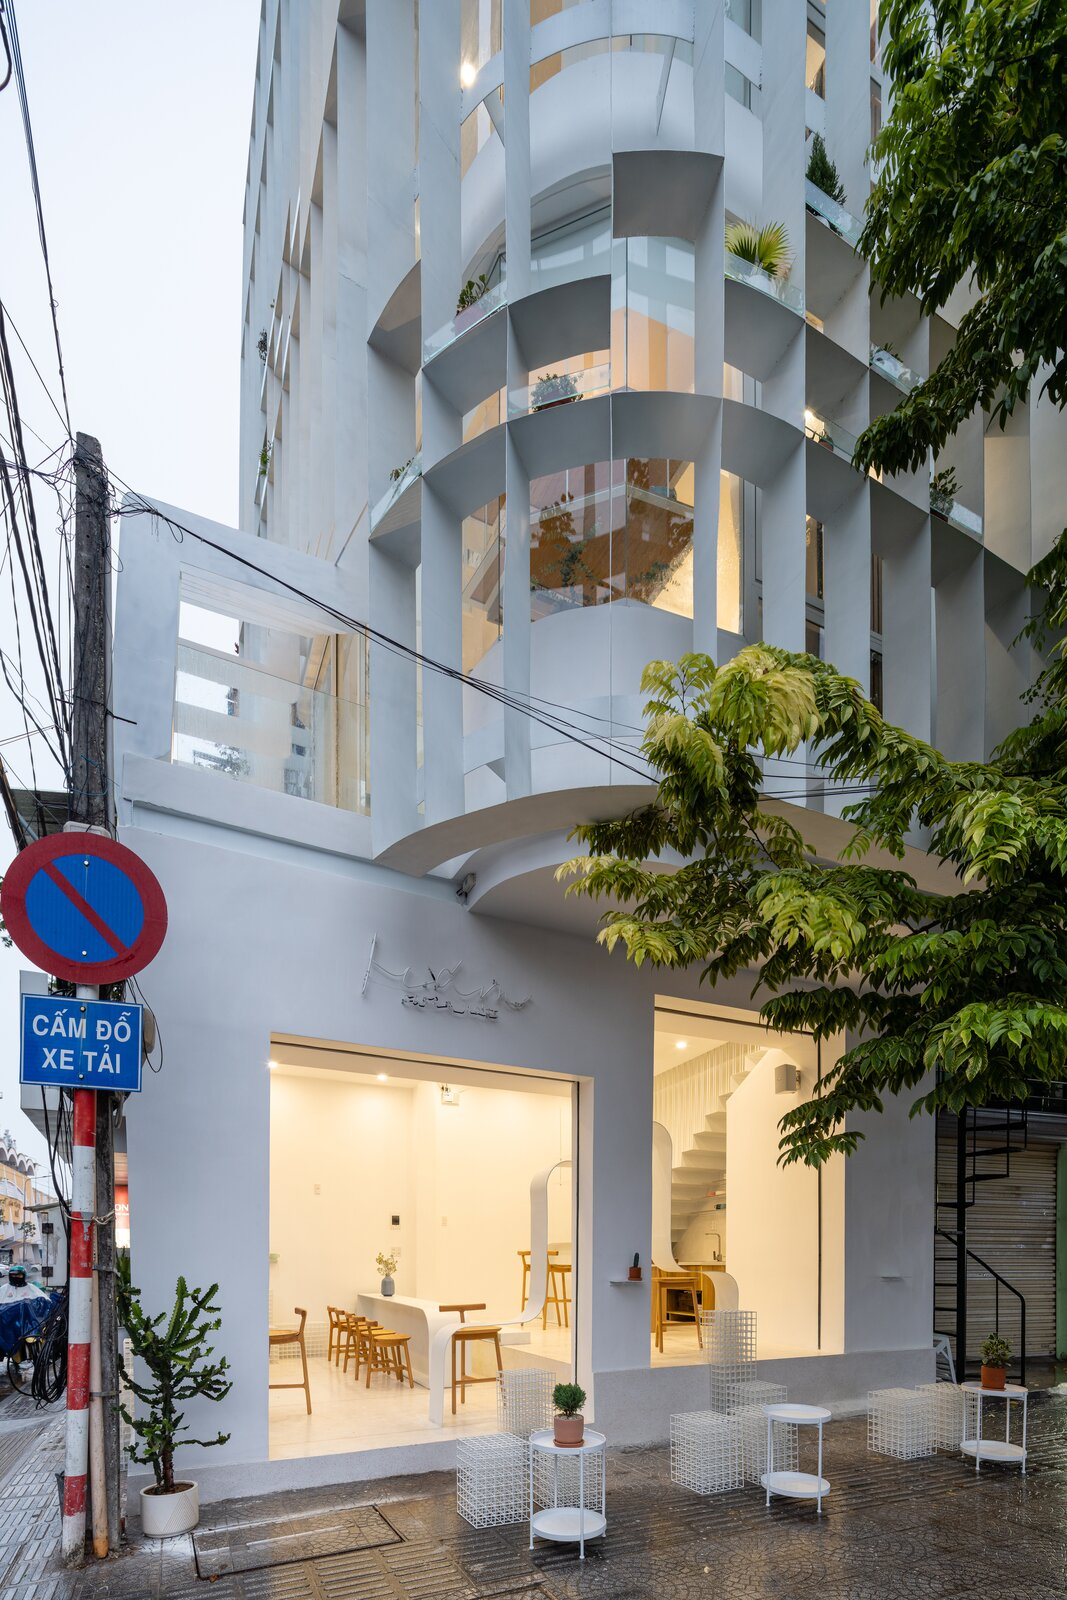 Exterior, Glass Siding Material, and Flat RoofLine  Photo 2 of 23 in A Translucent Tower in Vietnam Invites Visitors in for a Cup of Coffee